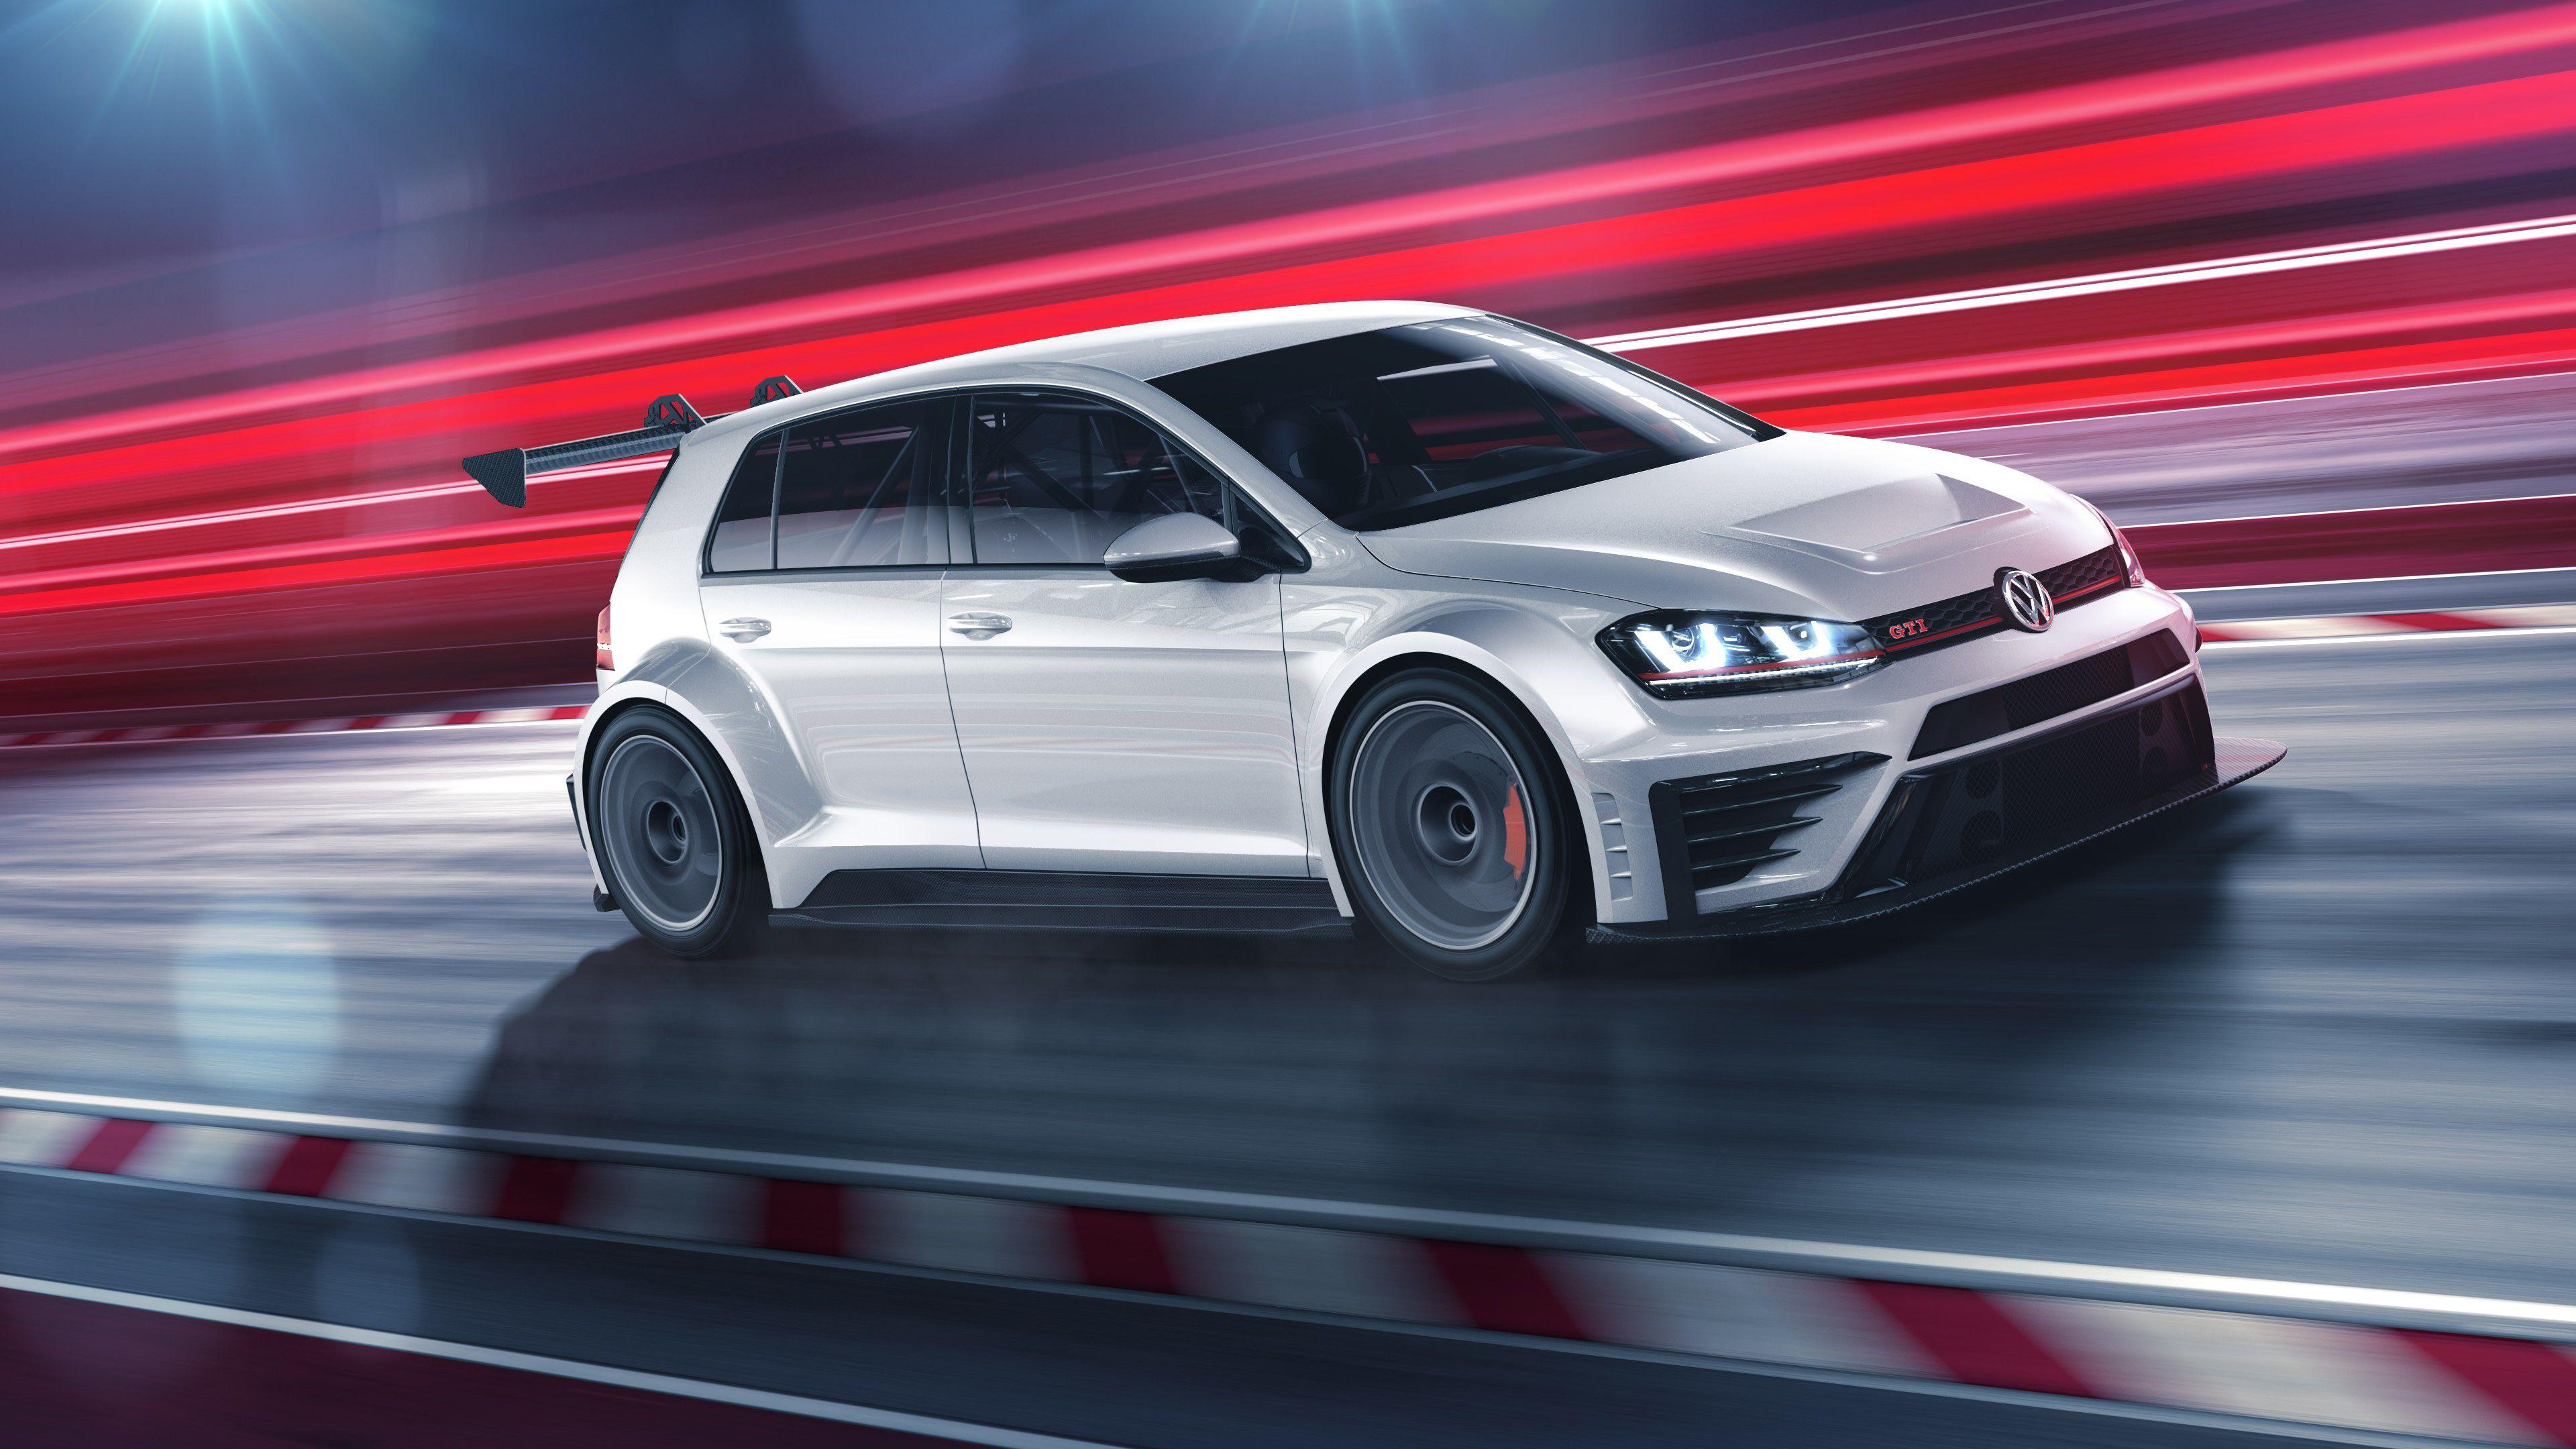 Volkswagen Golf GTi TCR 2016 4K Wallpaper | HD Car Wallpapers | ID #6303